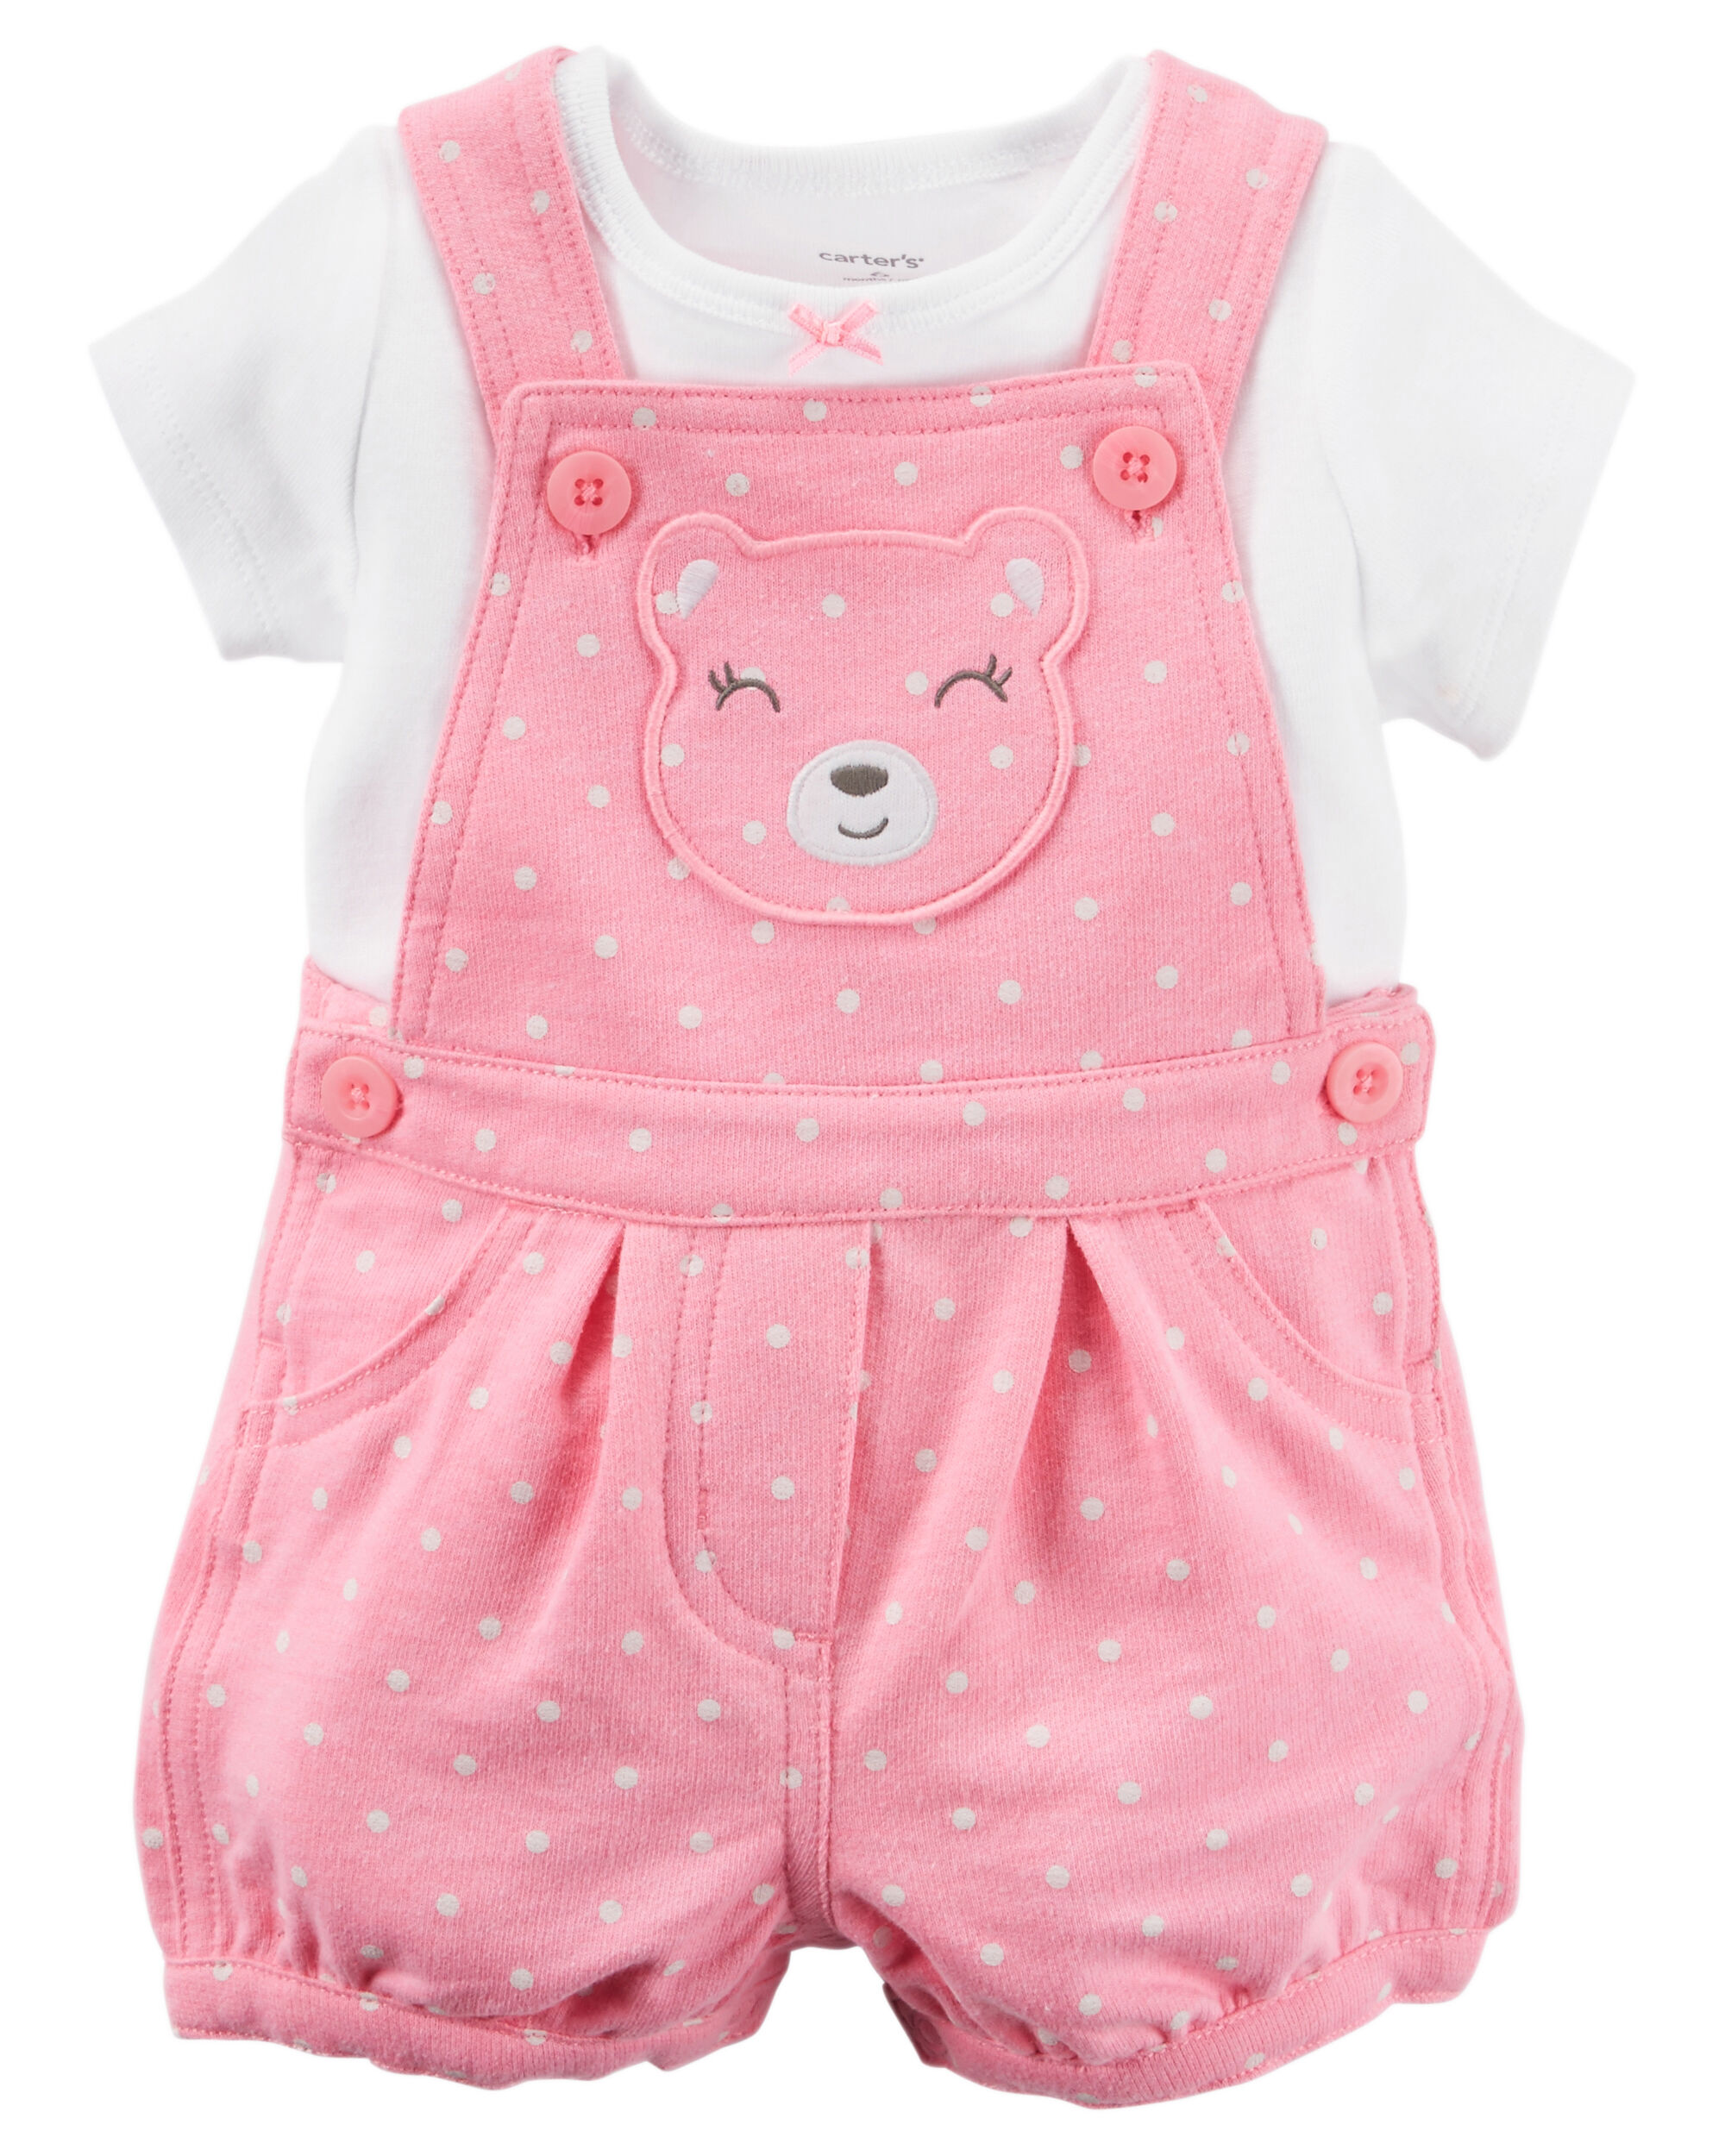 2 Piece Tee & Shortalls Set